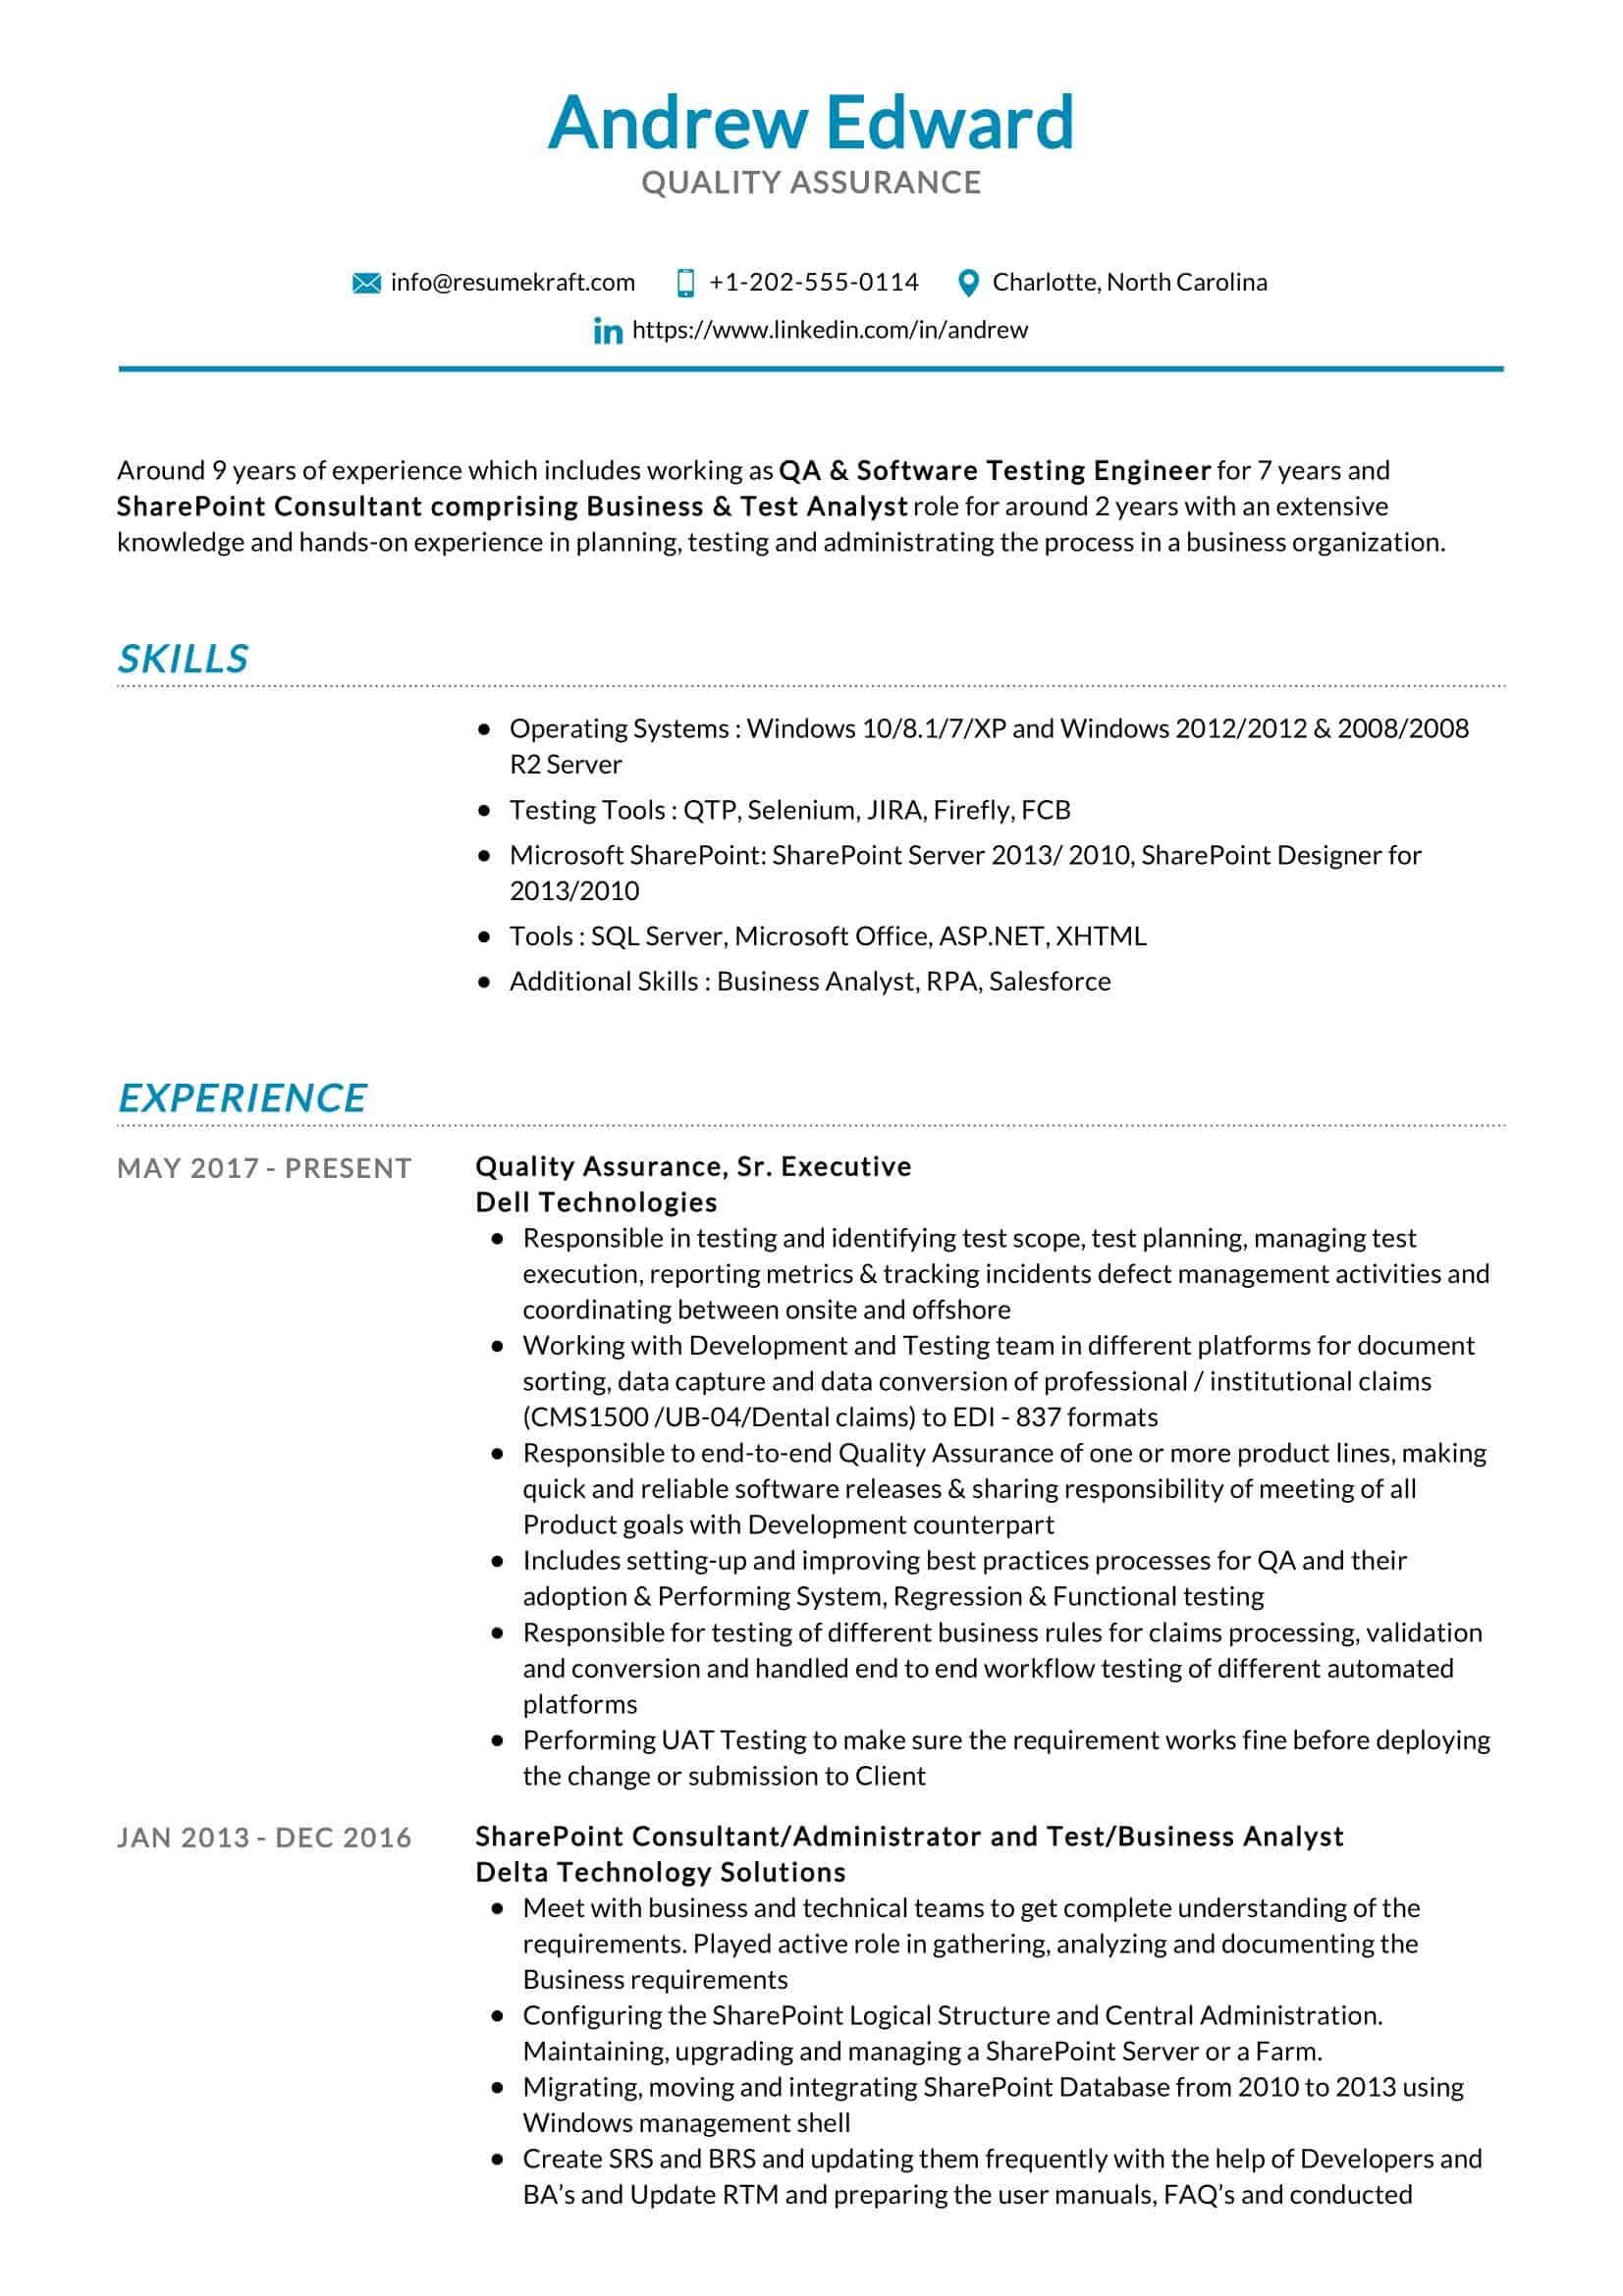 quality assurance resume sample resumekraft experience core functional template for word Resume Quality Assurance Experience Resume